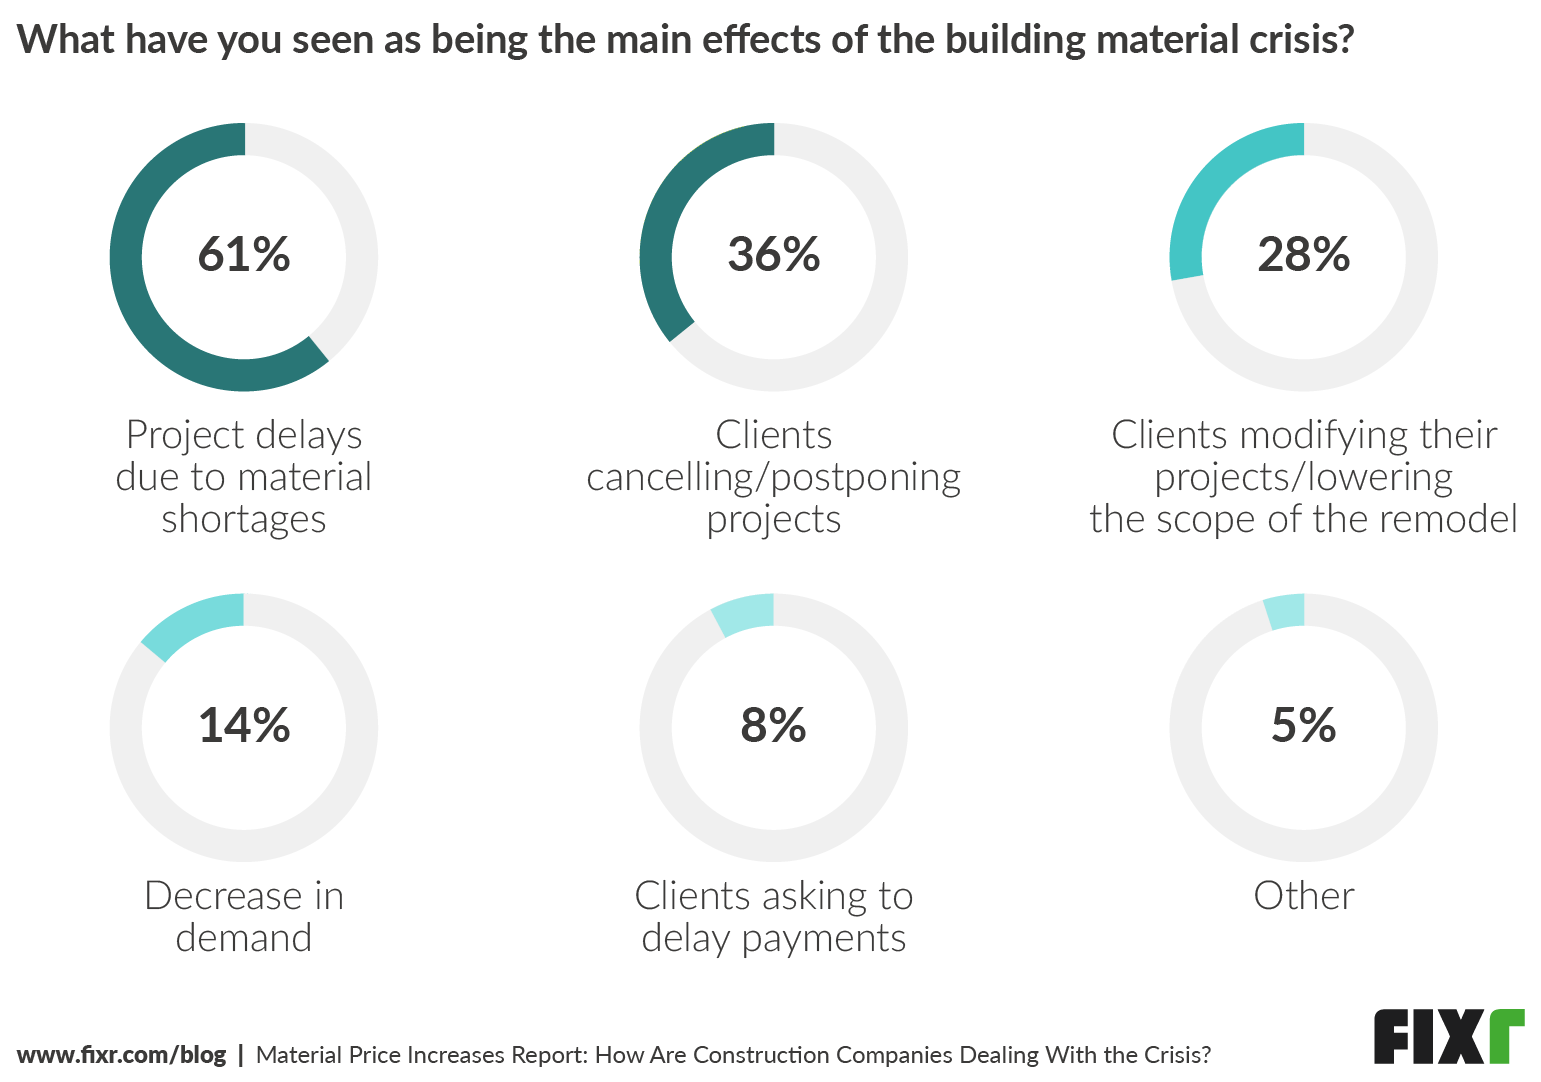 Main Effects of the Material Price Increases